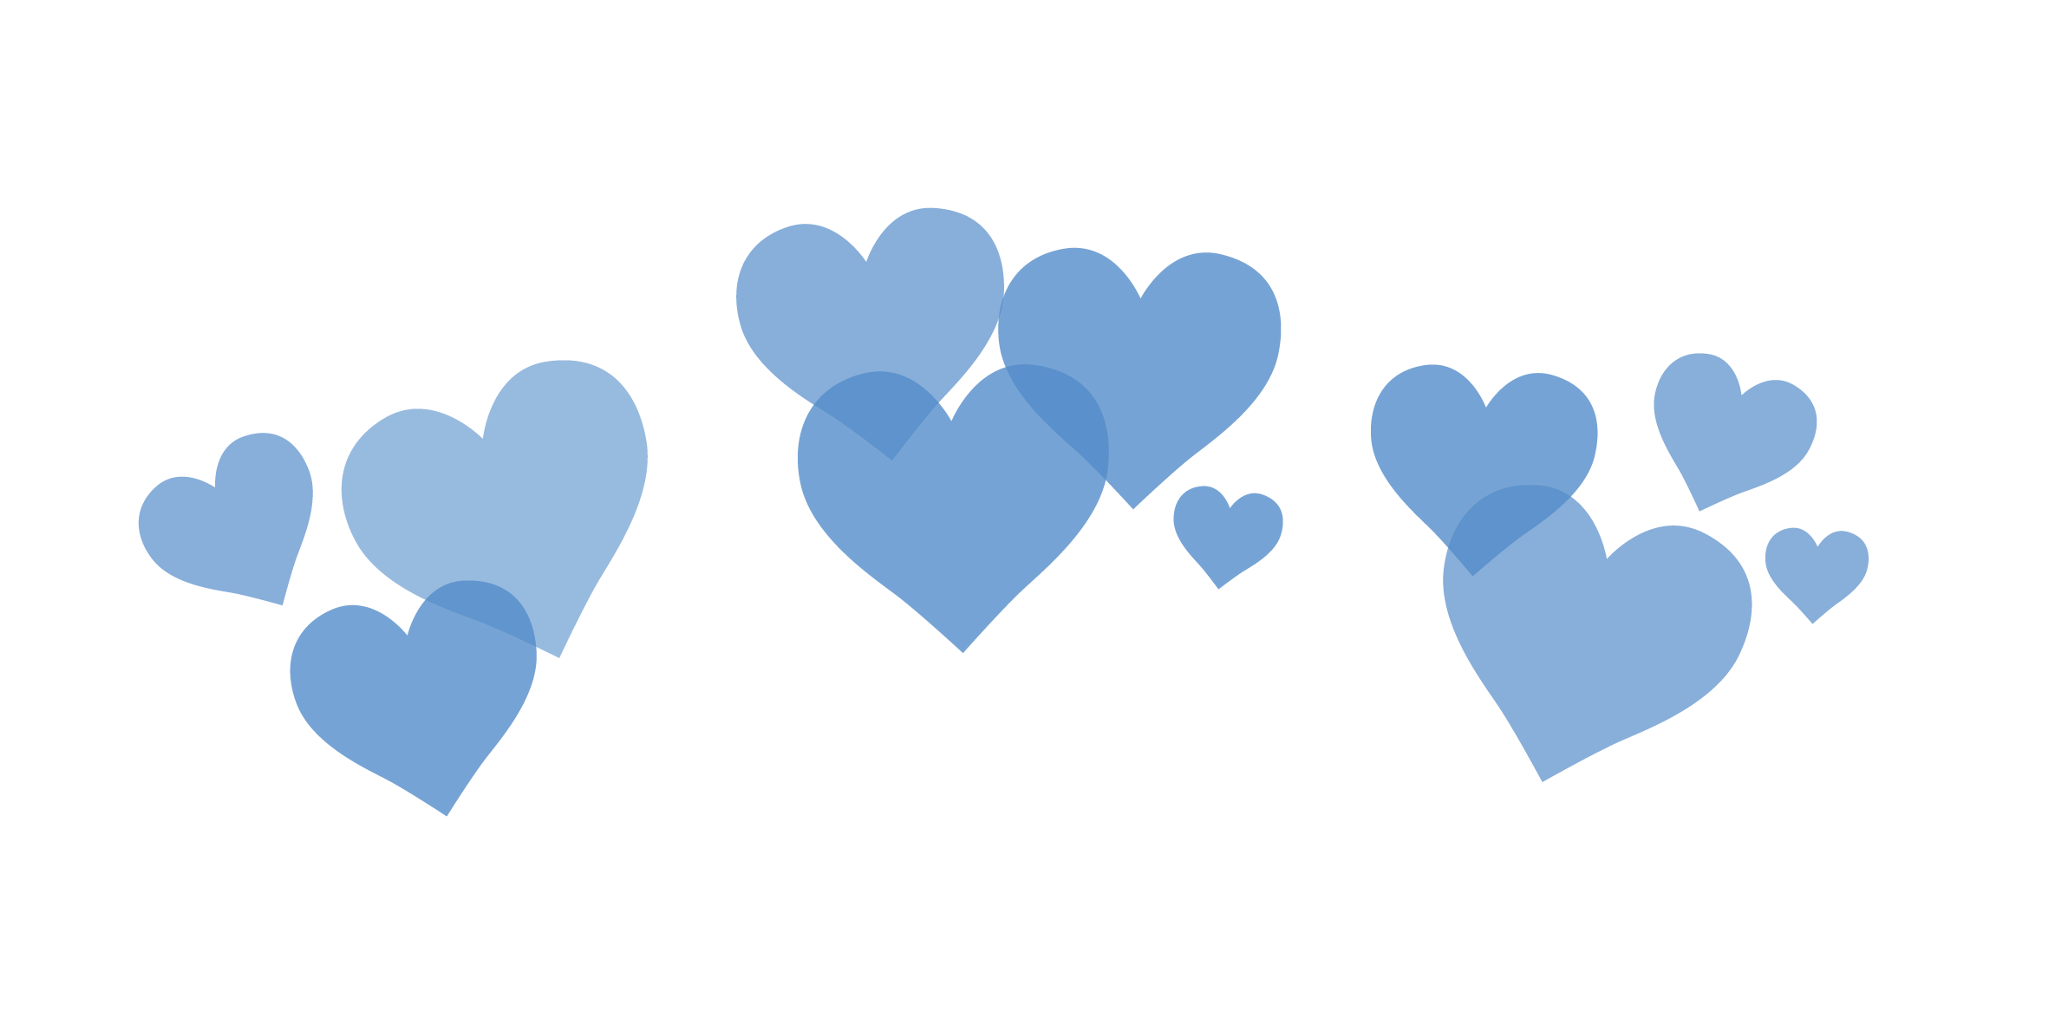 Blue hearts png, Blue hearts png Transparent FREE for download on  WebStockReview 2021